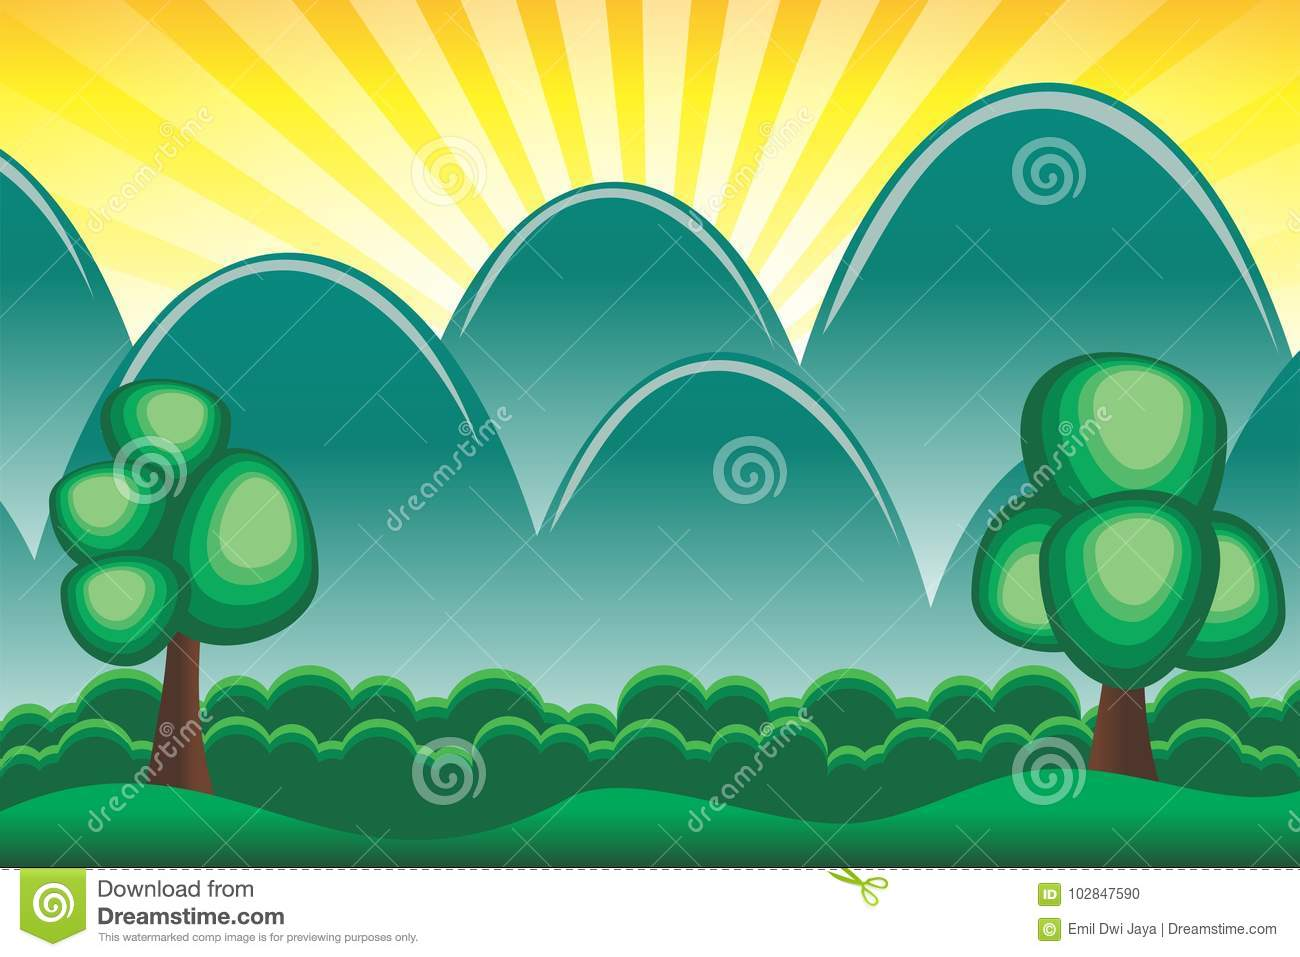 Download Wallpaper Mountain Cartoon - cartoon-tropical-forest-mountain-background-wallpaper-102847590  Pic_776291.jpg